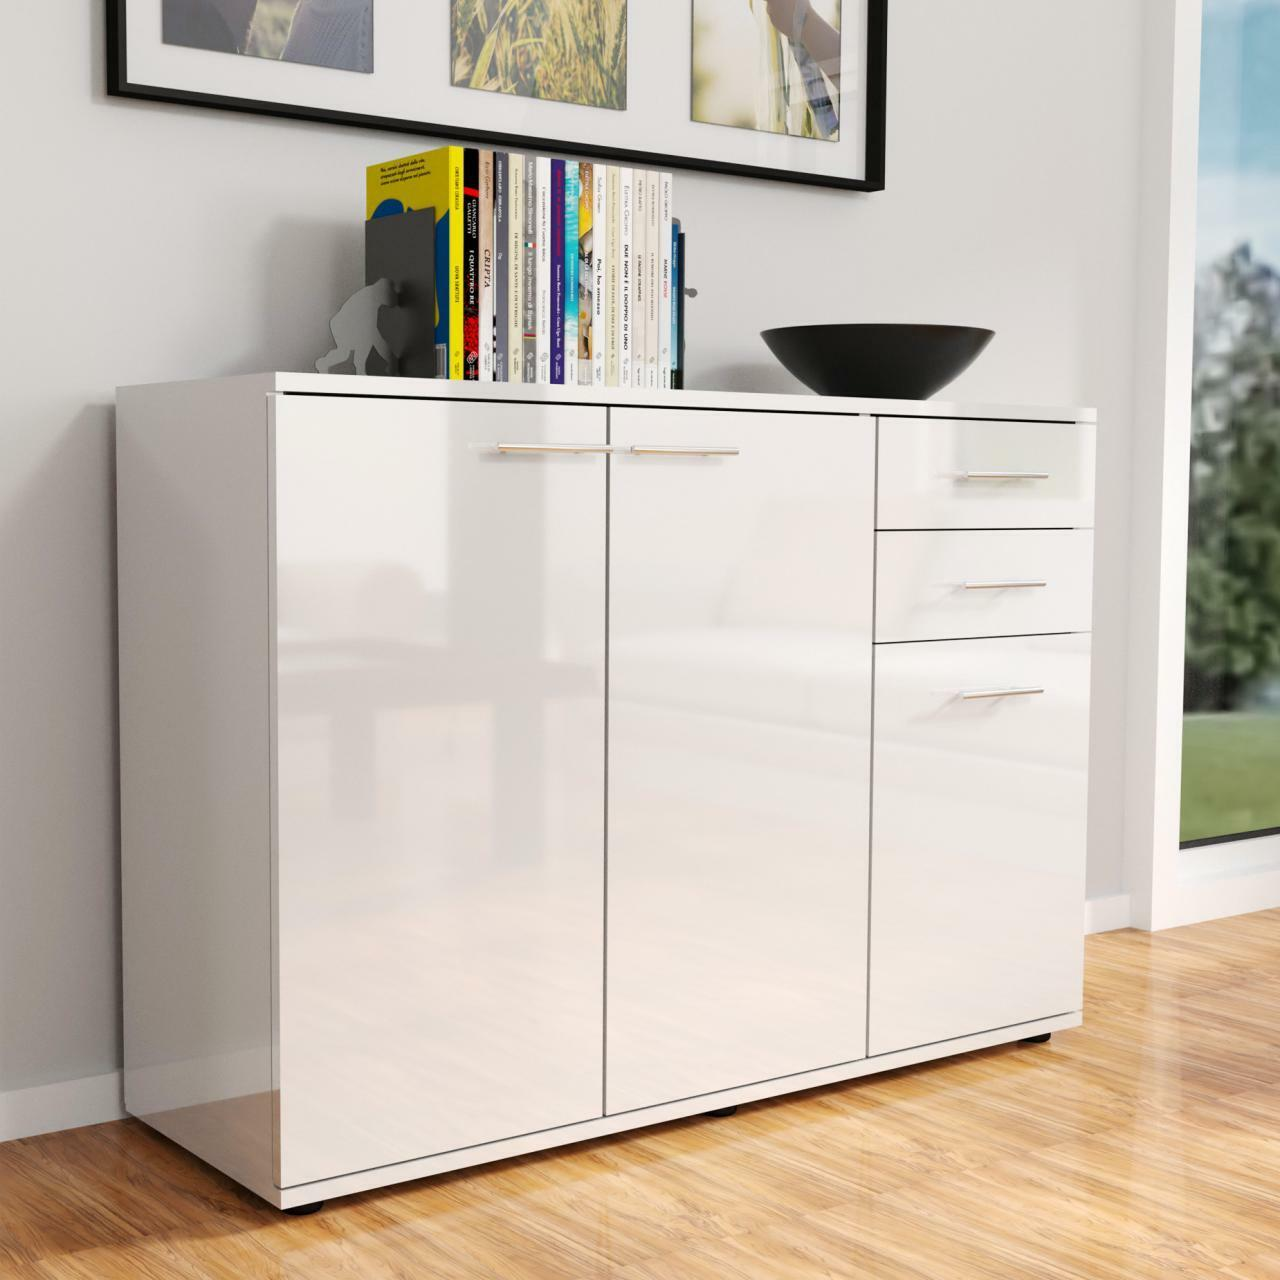 hochglanz kommode modern sideboard highboard mehrzweckschrank anrichte weiss eur 87 95. Black Bedroom Furniture Sets. Home Design Ideas